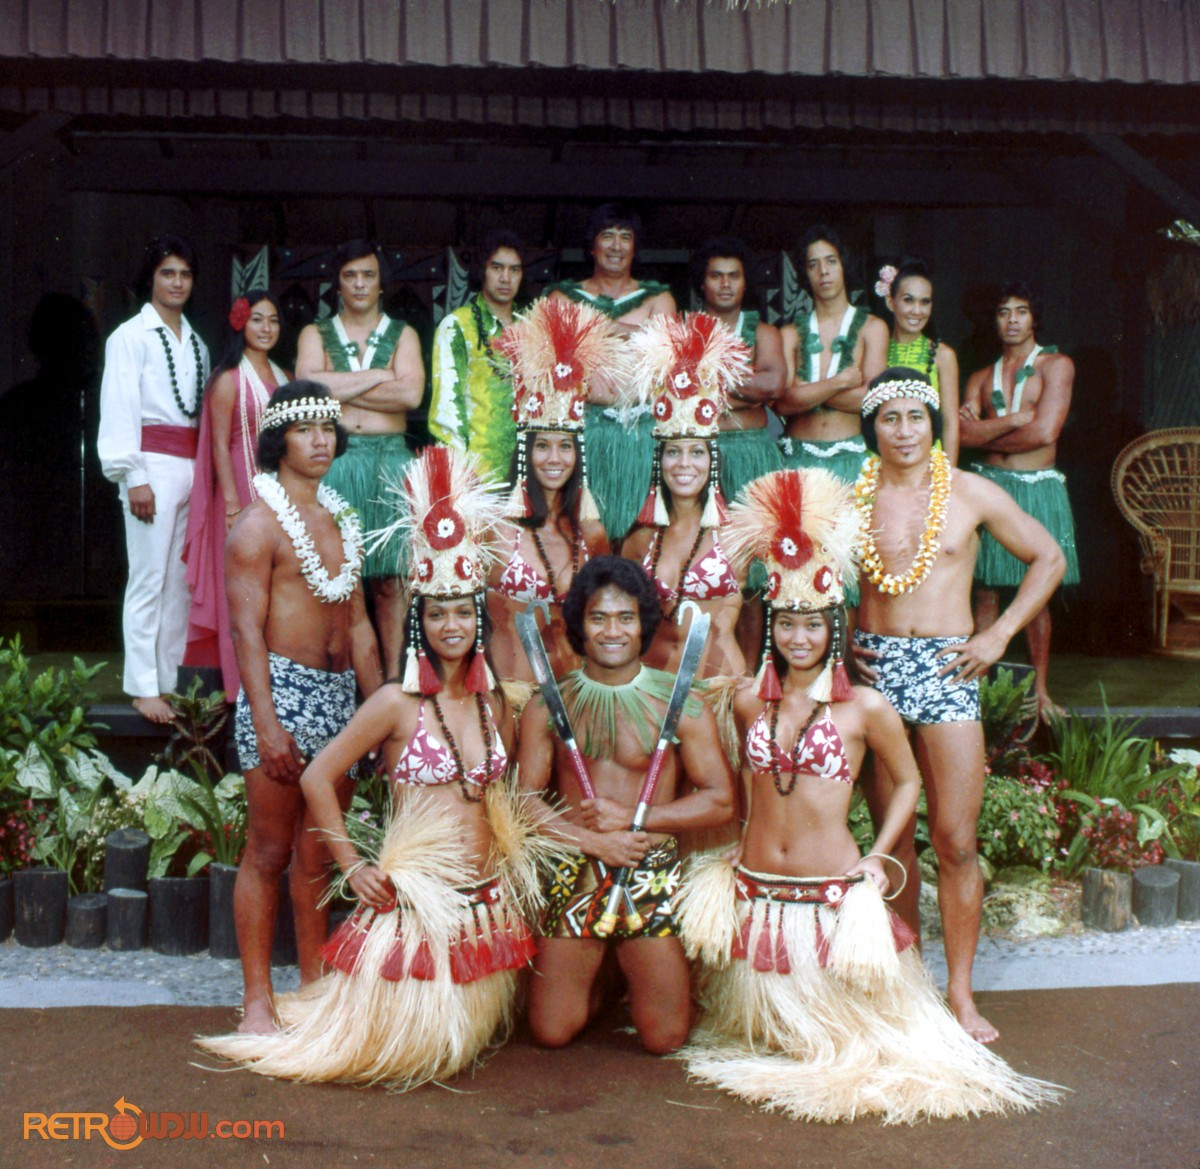 Luau Dancers-Colorful Costumes